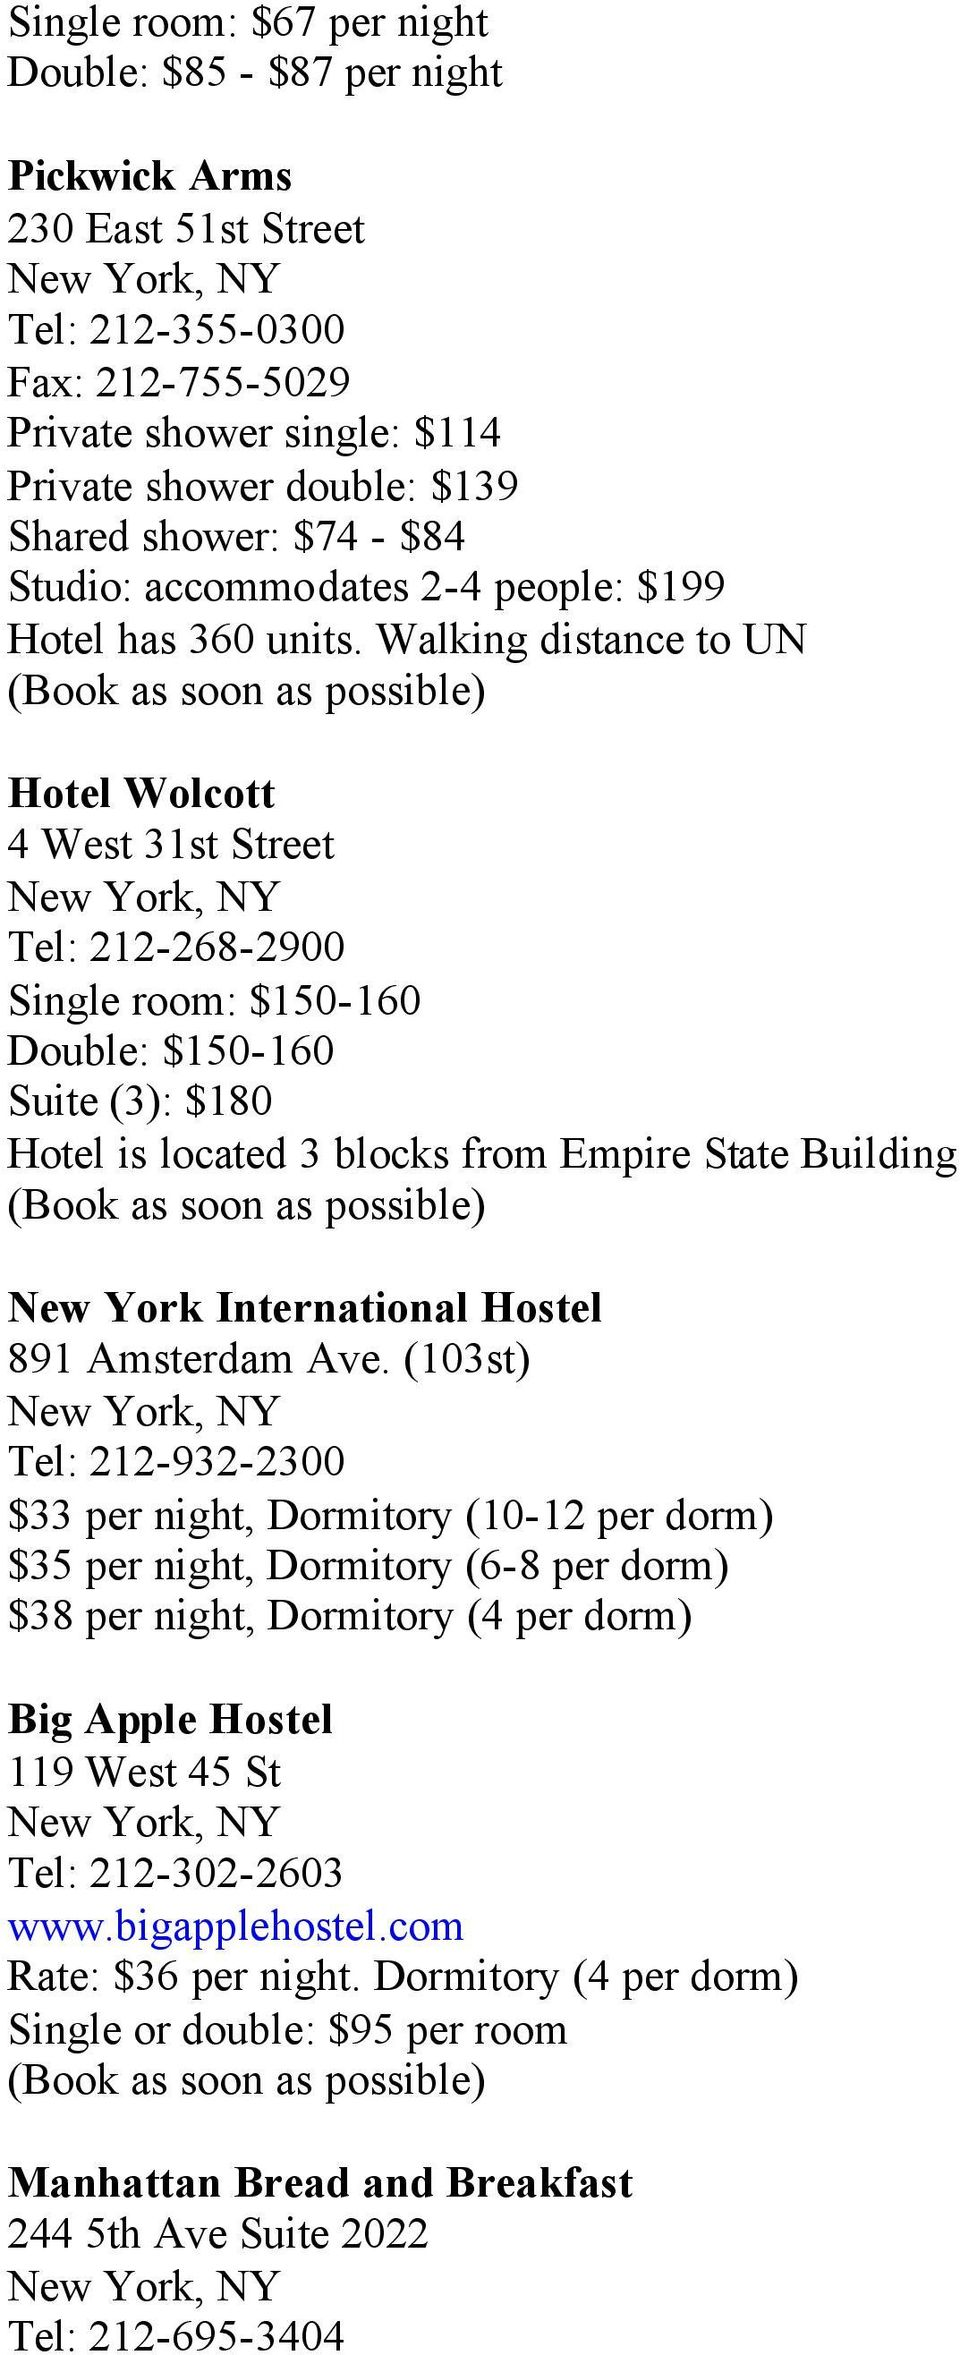 Walking distance to UN (Book as soon as possible) Hotel Wolcott 4 West 31st Street Tel: 212-268-2900 Single room: $150-160 Double: $150-160 Suite (3): $180 Hotel is located 3 blocks from Empire State